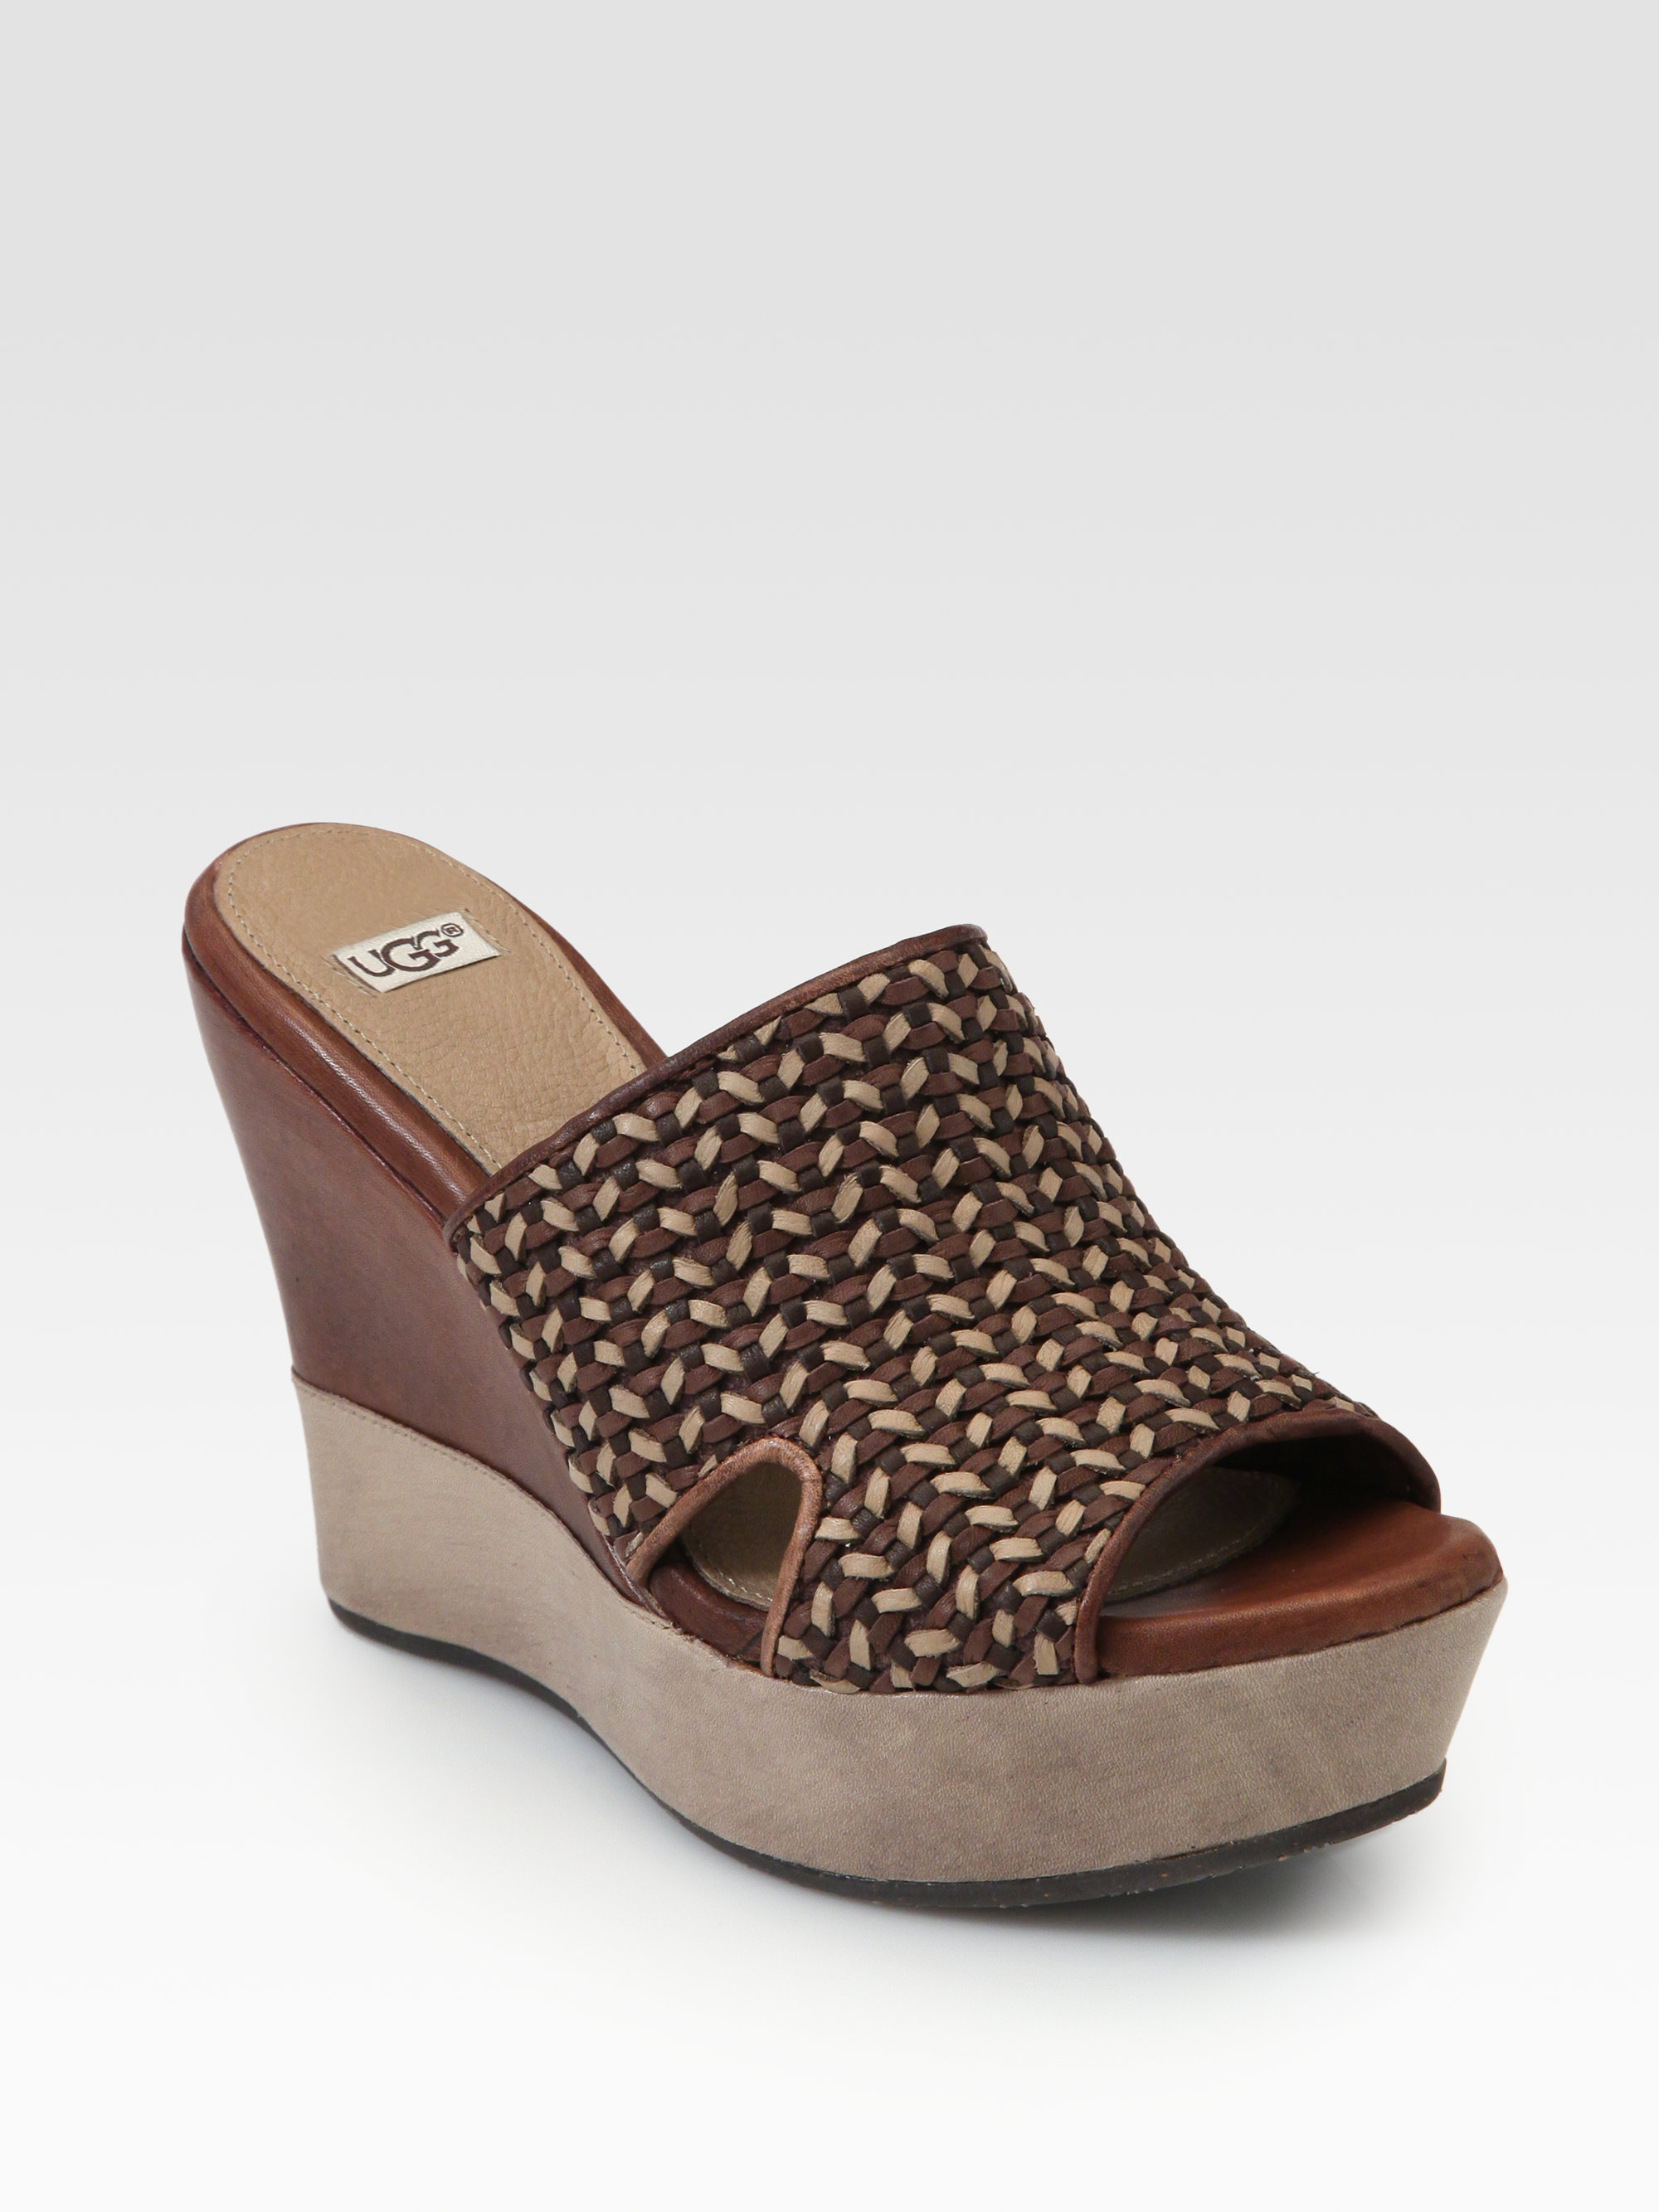 Ugg Doha Woven Leather Wedge Slides In Brown Lyst